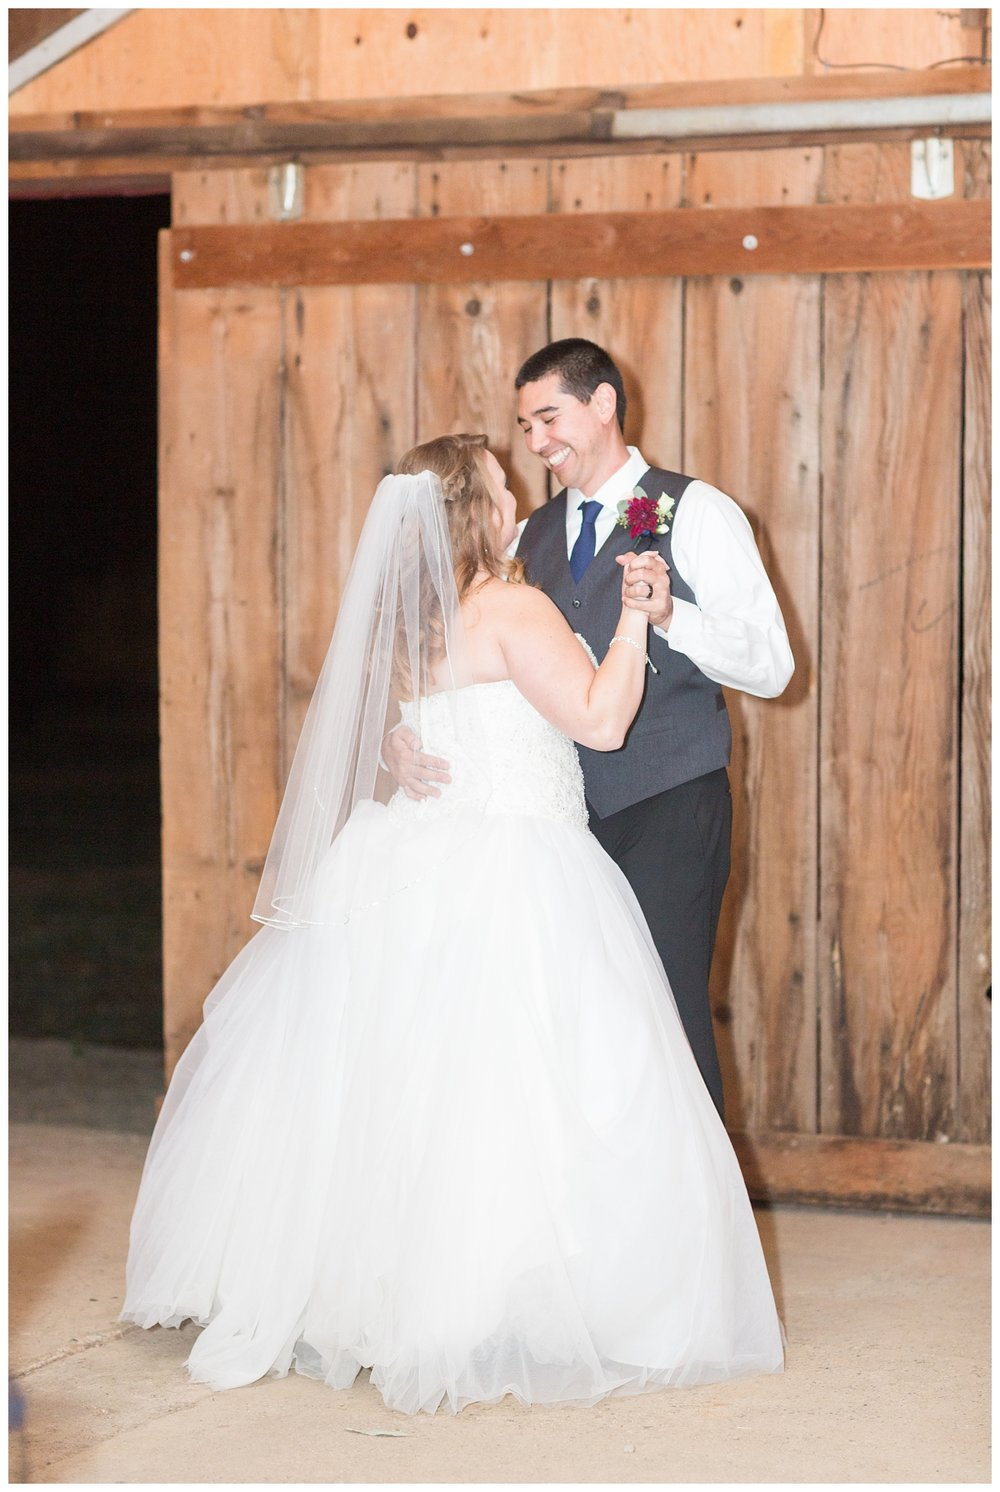 couples first dance together as bride and groom